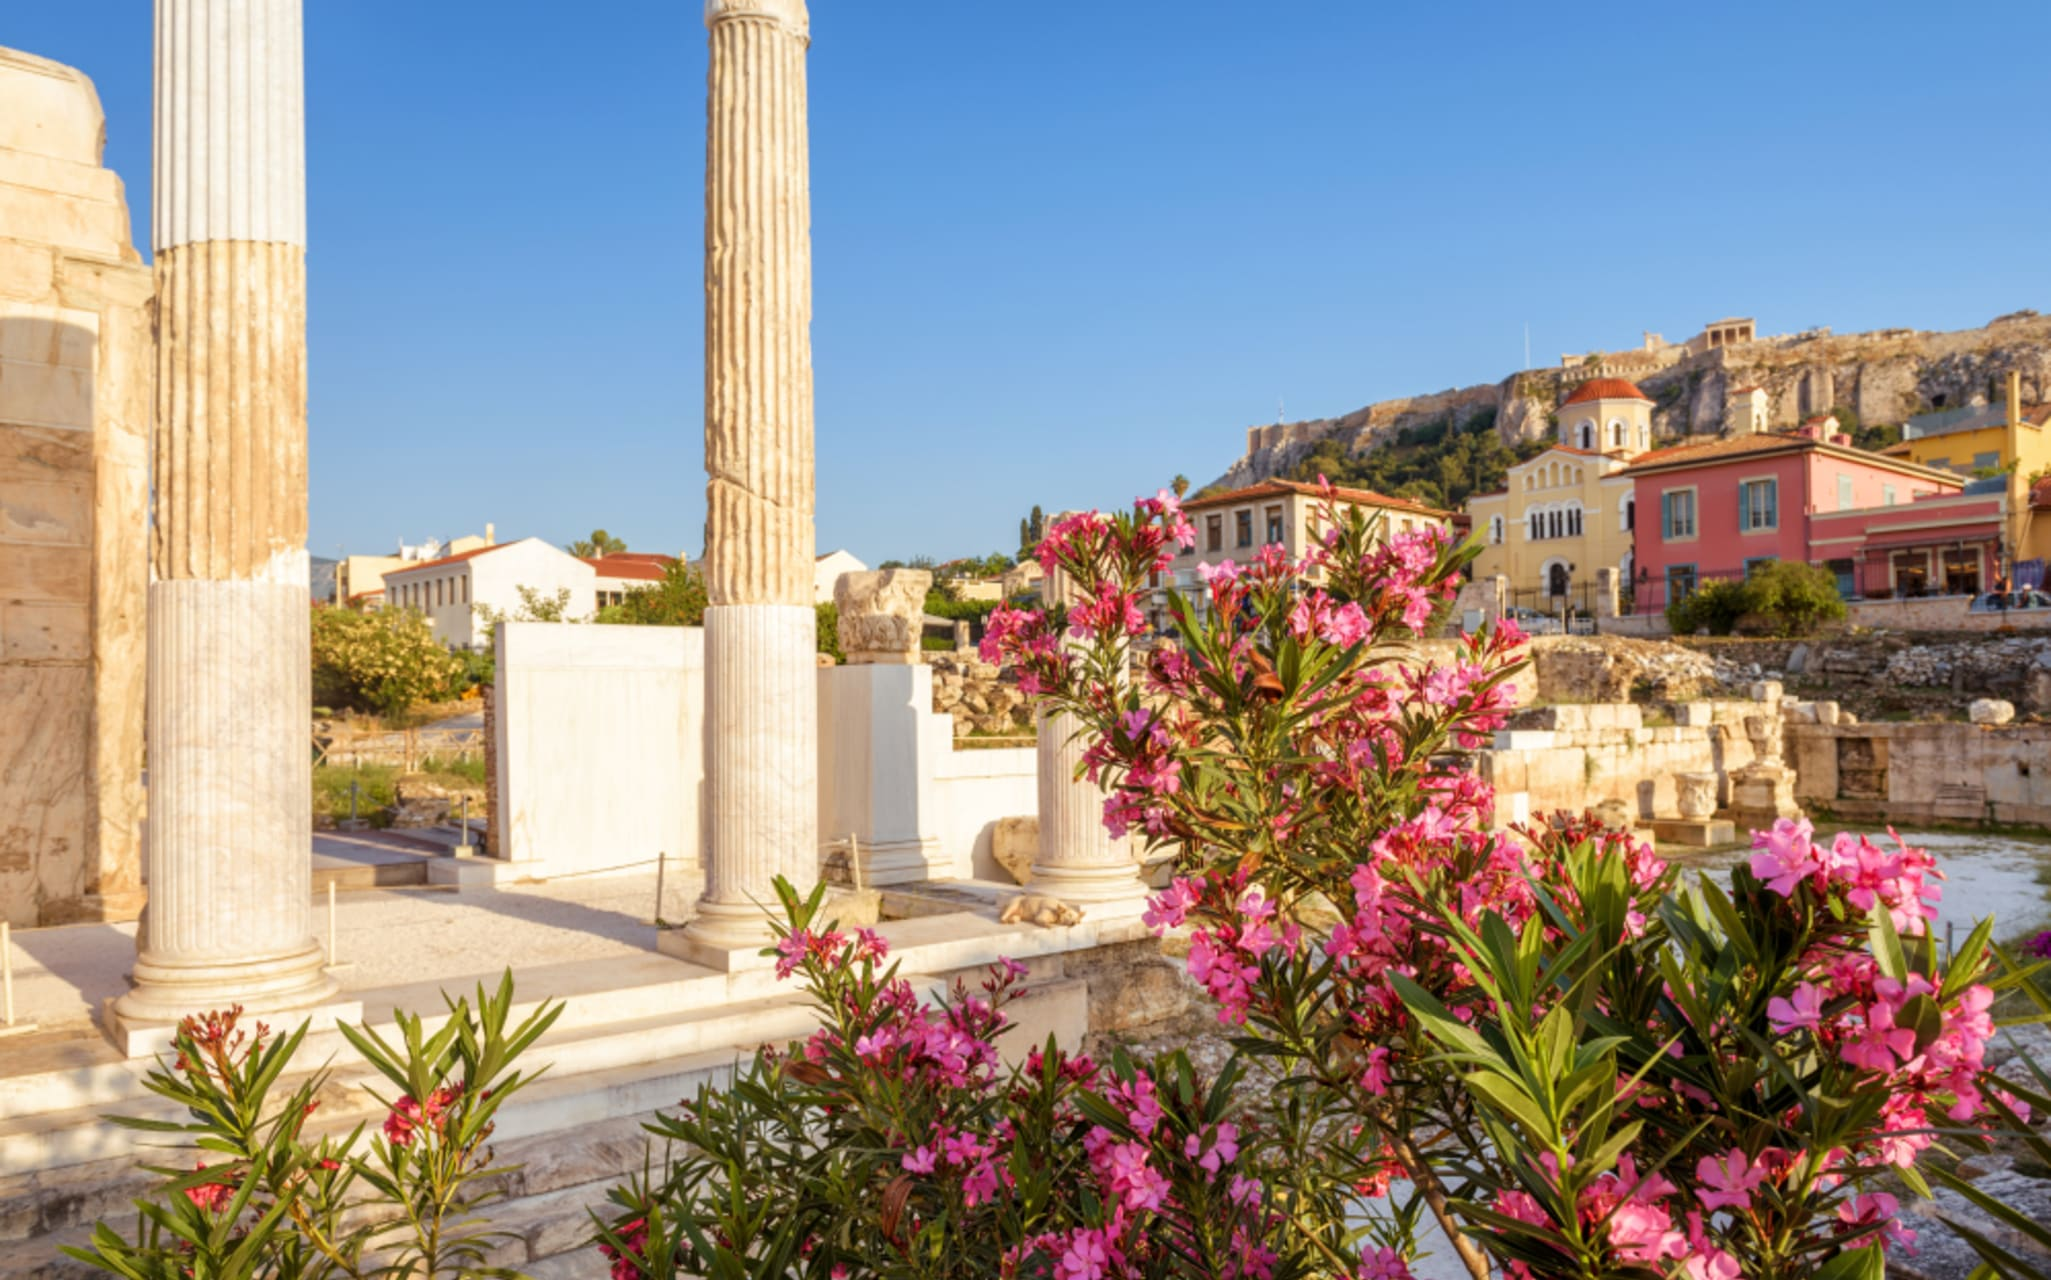 Athens - The Romans and the Monumental Landscape of Ancient Athens